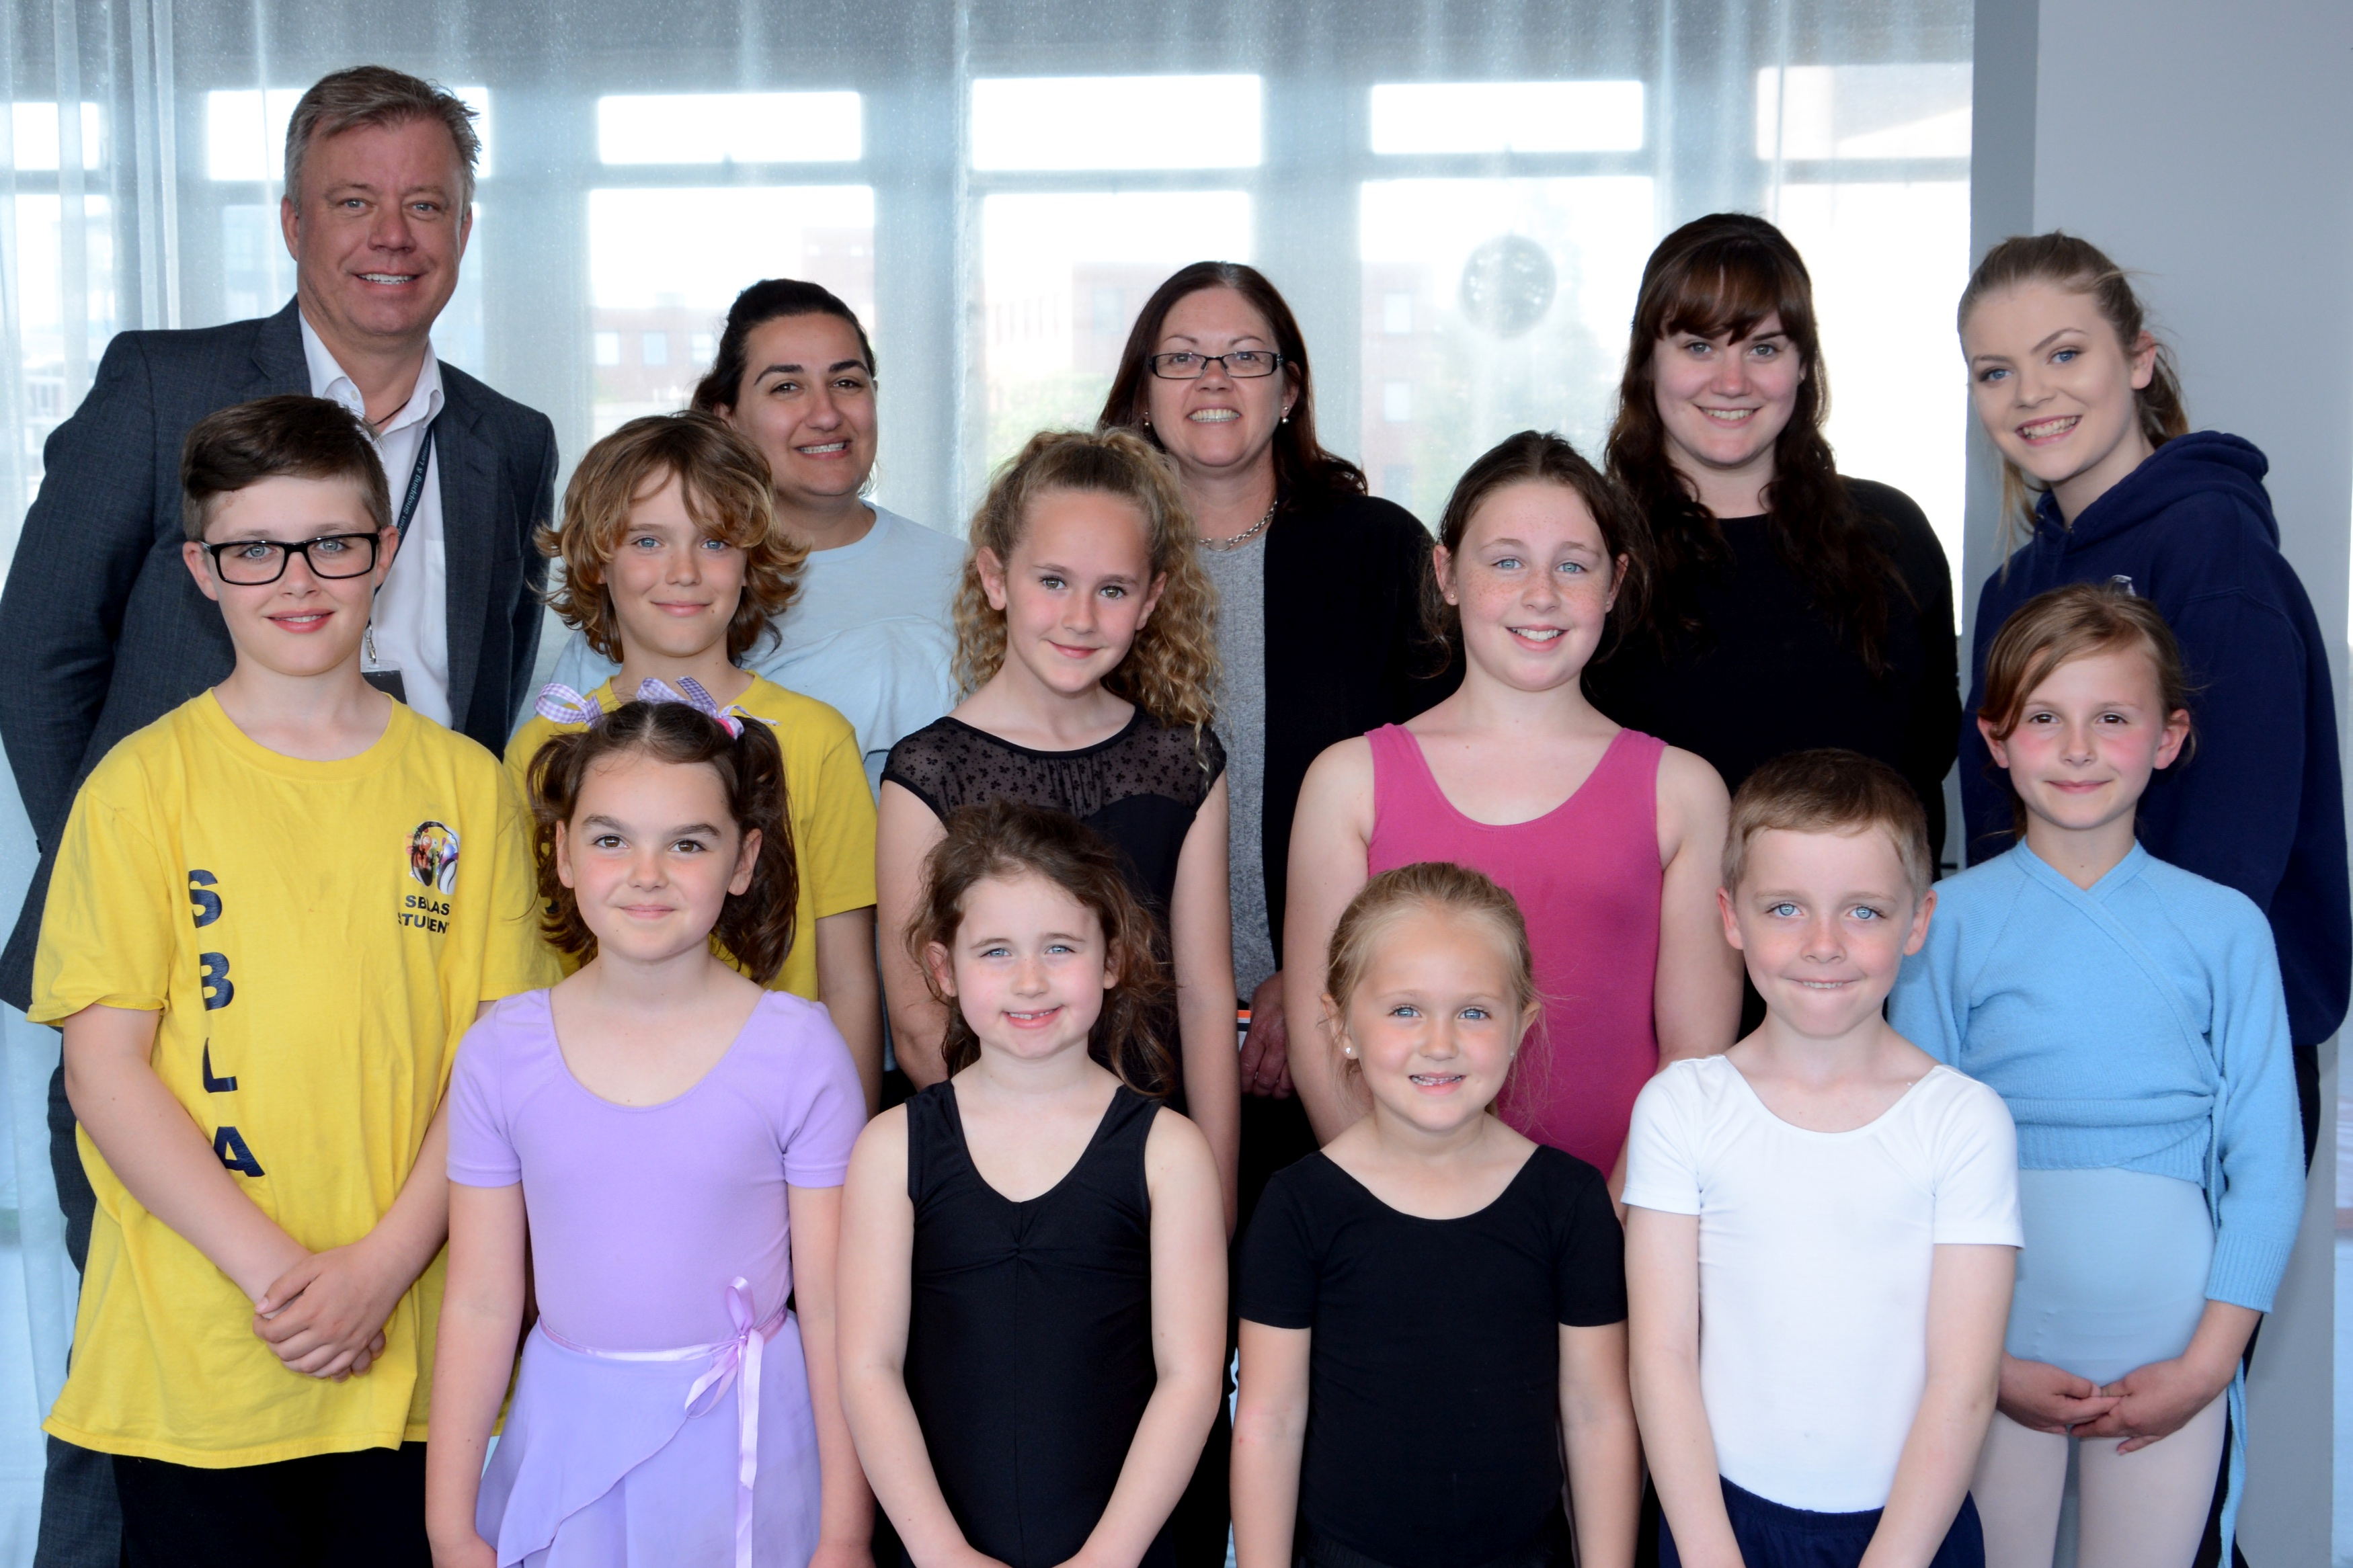 Shine Academy of Performing Arts opens at the Dolphin Shopping Centre